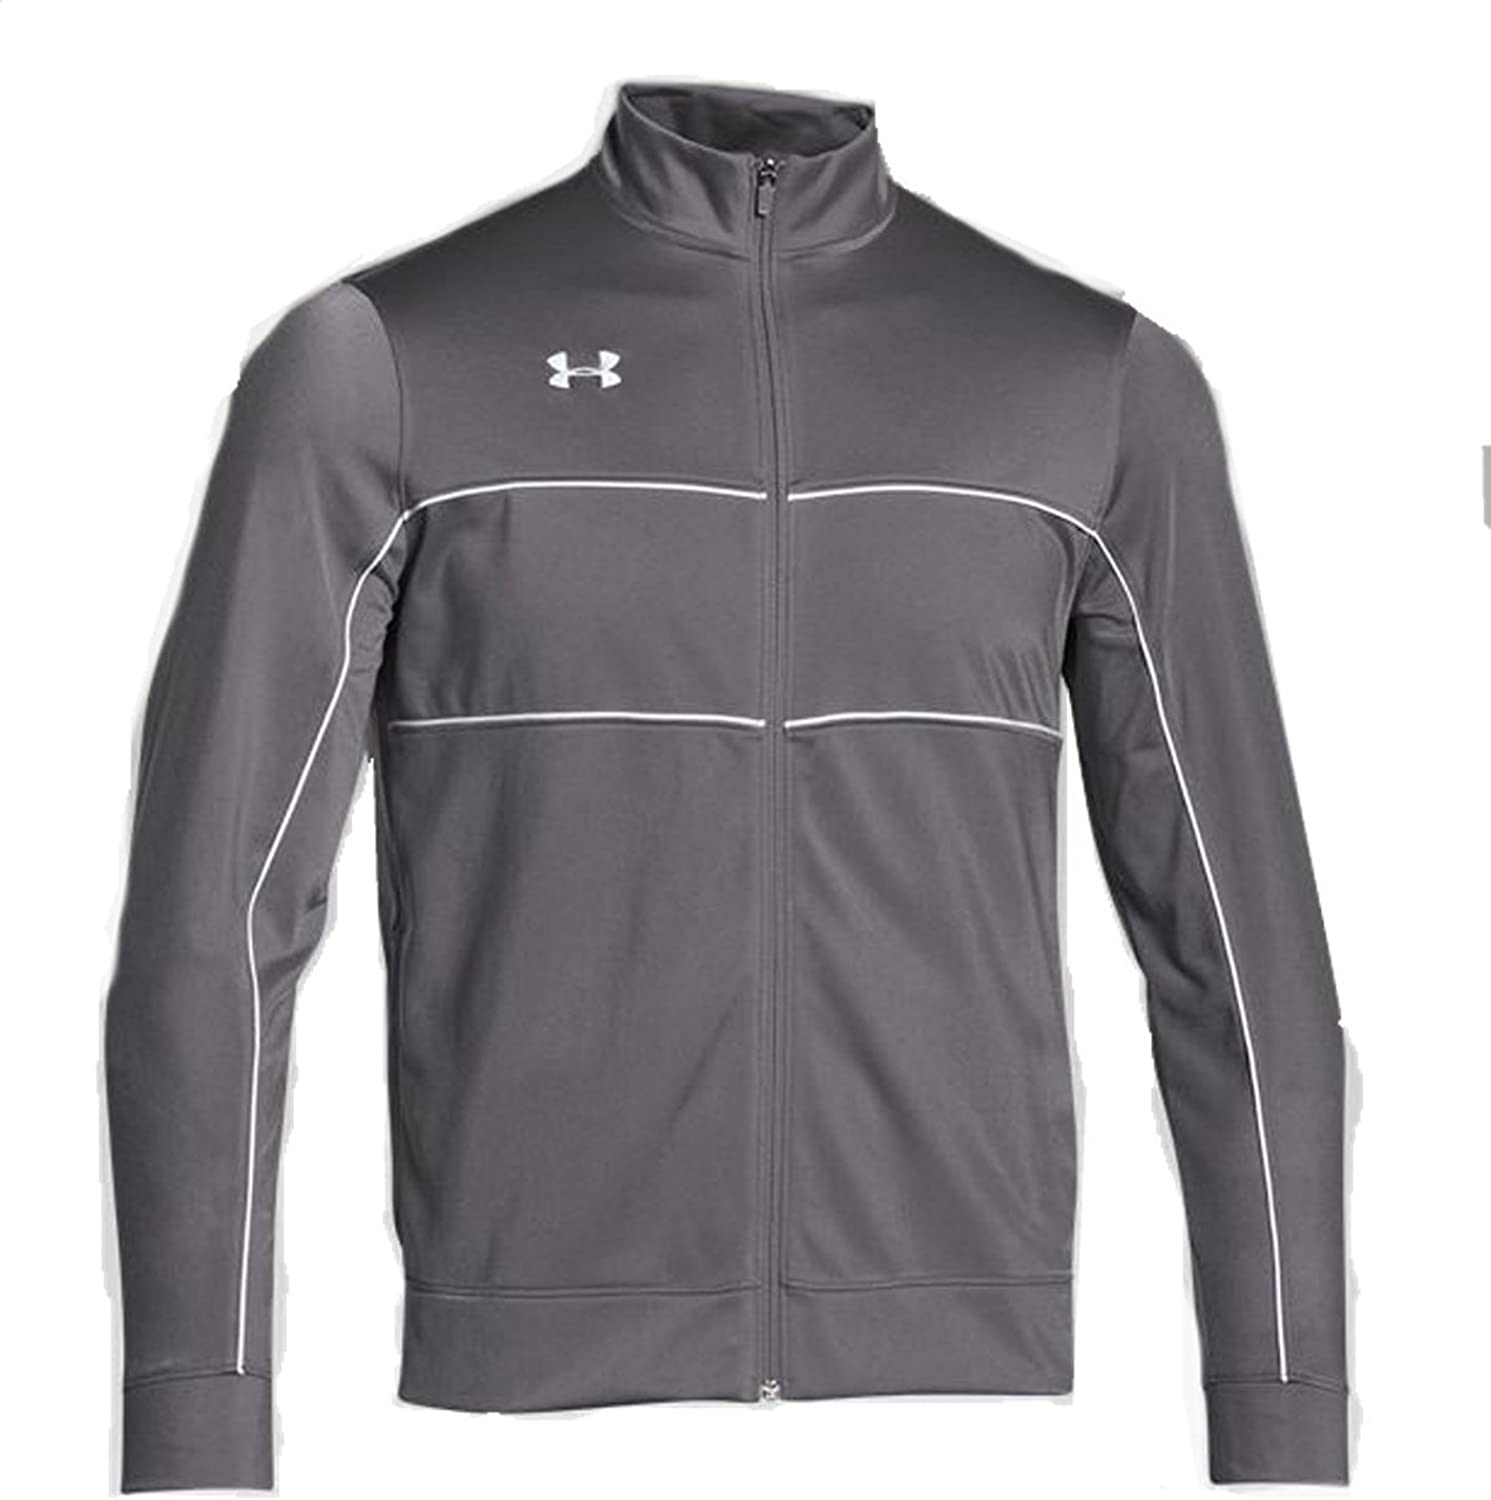 Under Armour Men's Rival Knit Warm-Up Jacket: Clothing